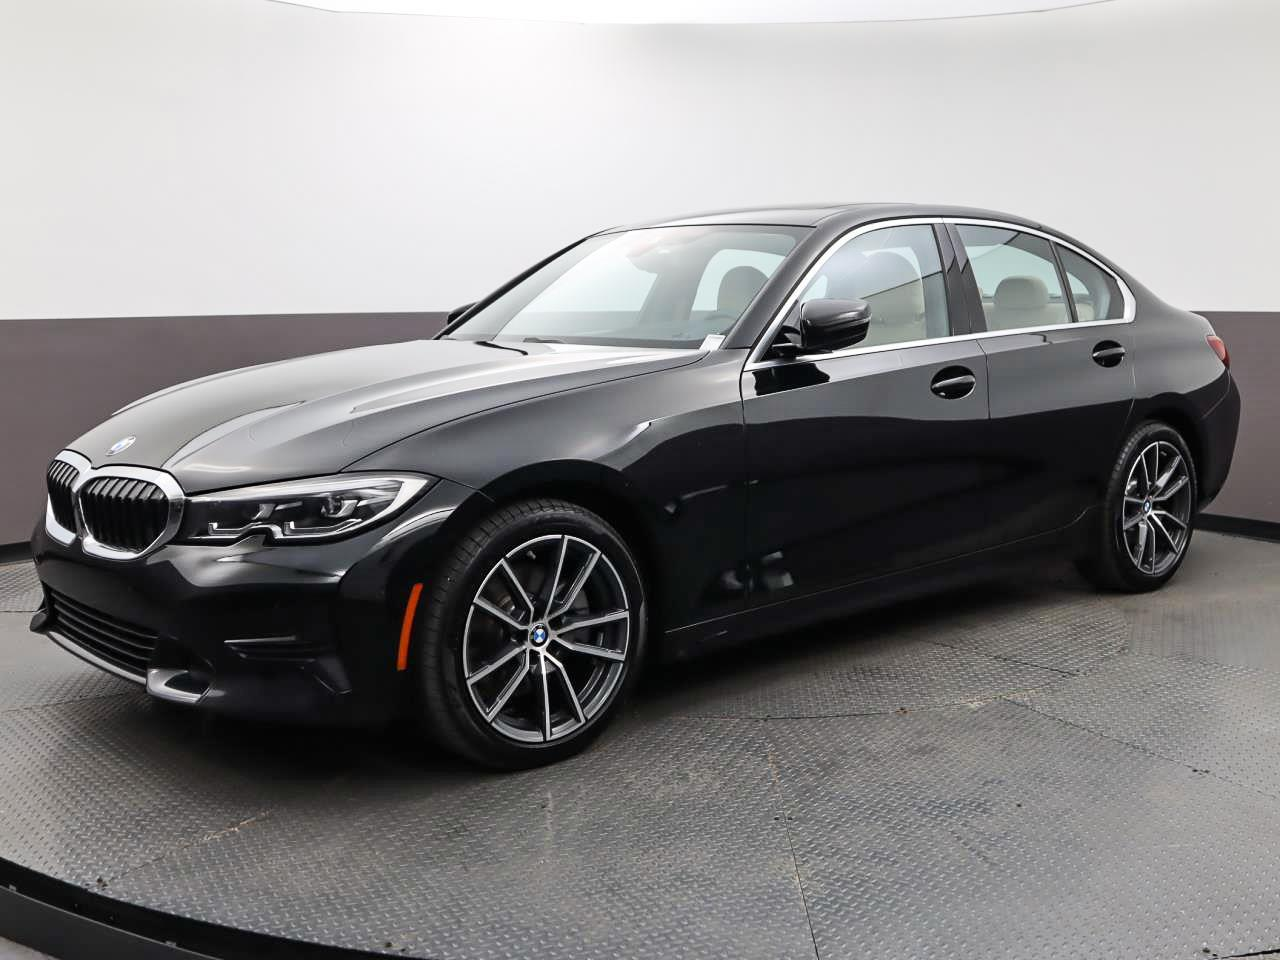 Used BMW 3-SERIES 2019 MARGATE 330I